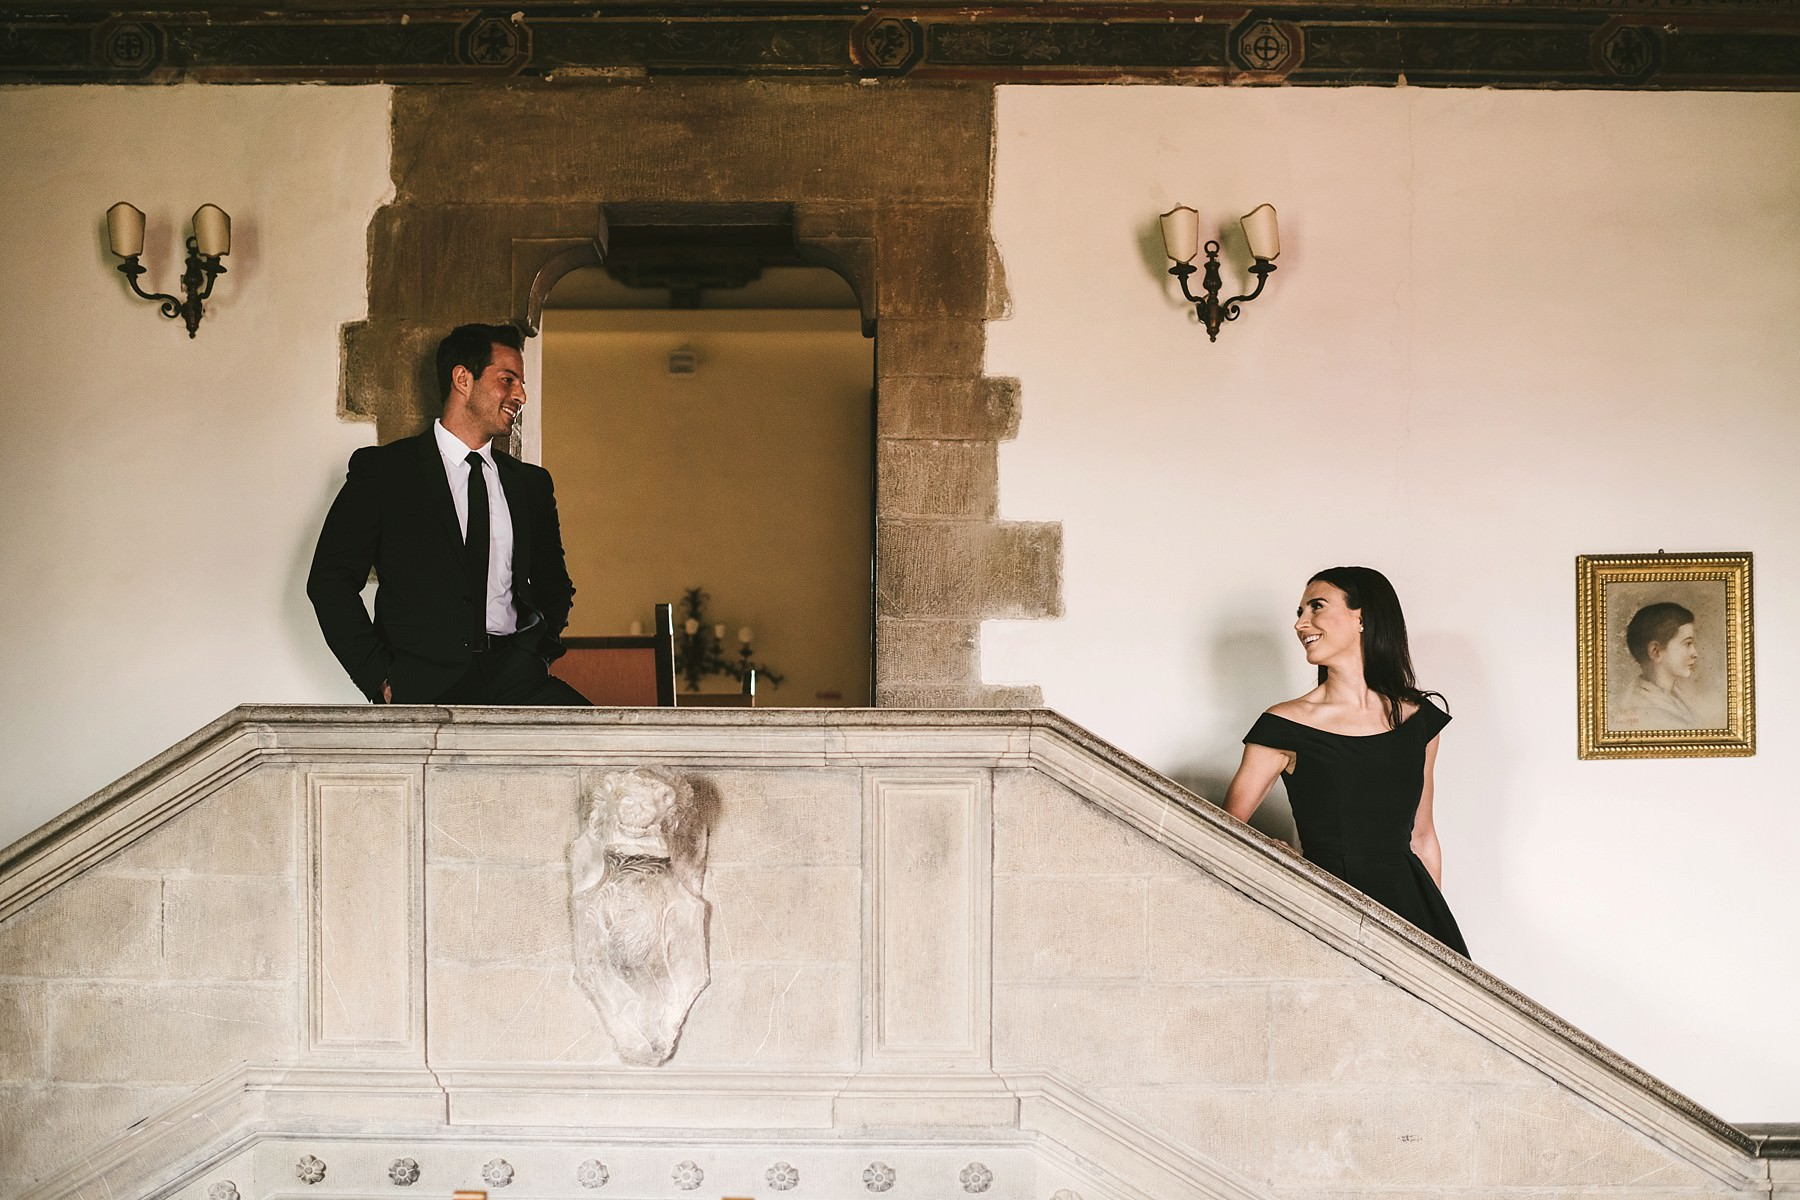 Couple portrait engagement photo shoot at the historical residence Torre di Bellosguardo in Florence